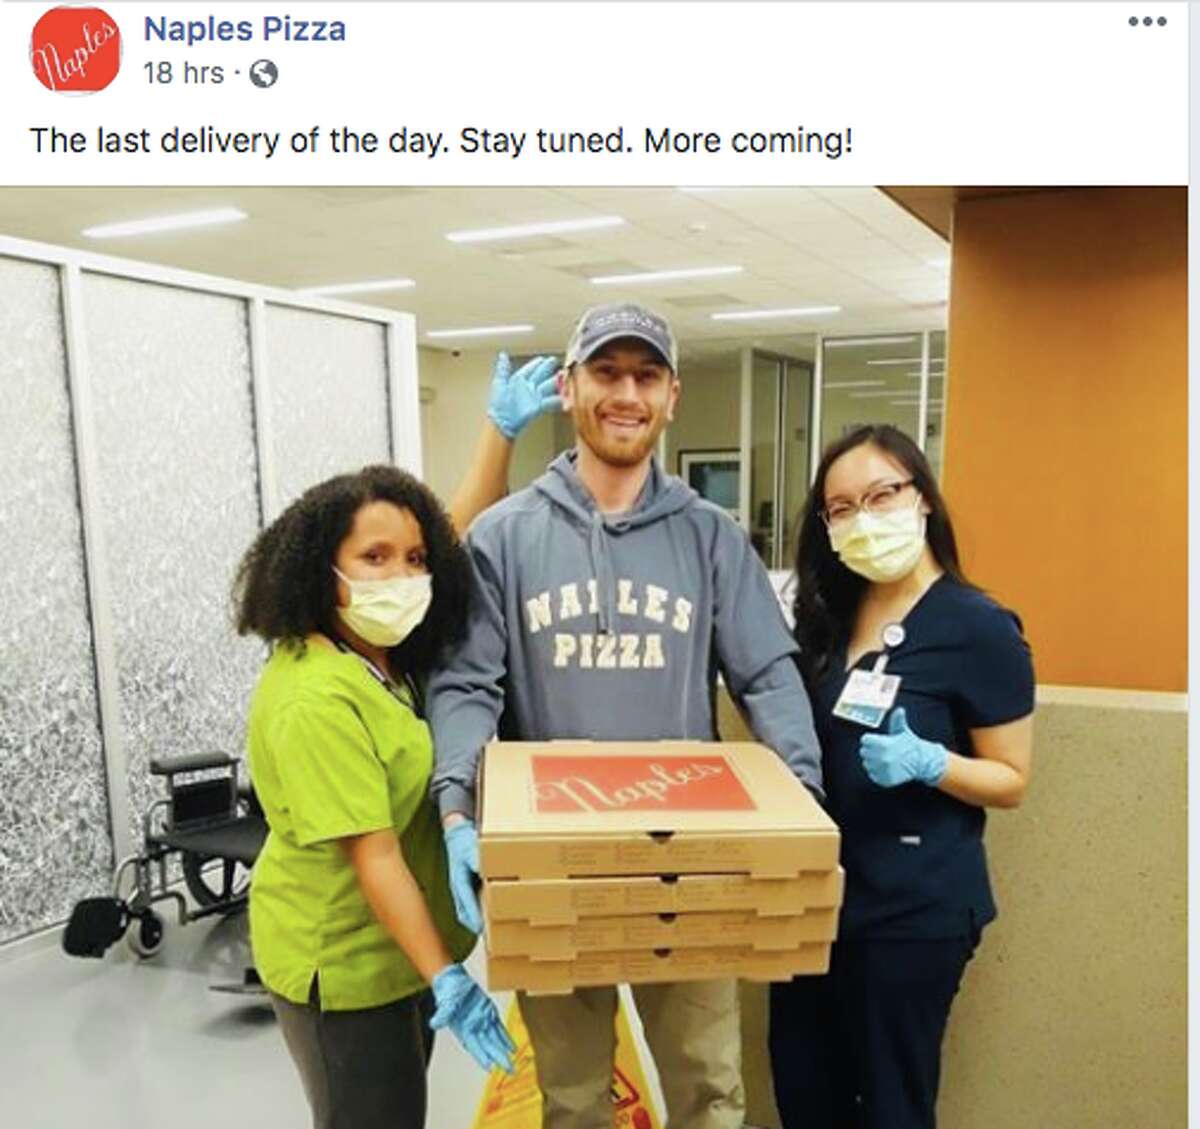 Kurt Kruczek, the owner and operator of Naples Pizza, has been delivering pizzas to hospital staff at UConn Health in Farmington.